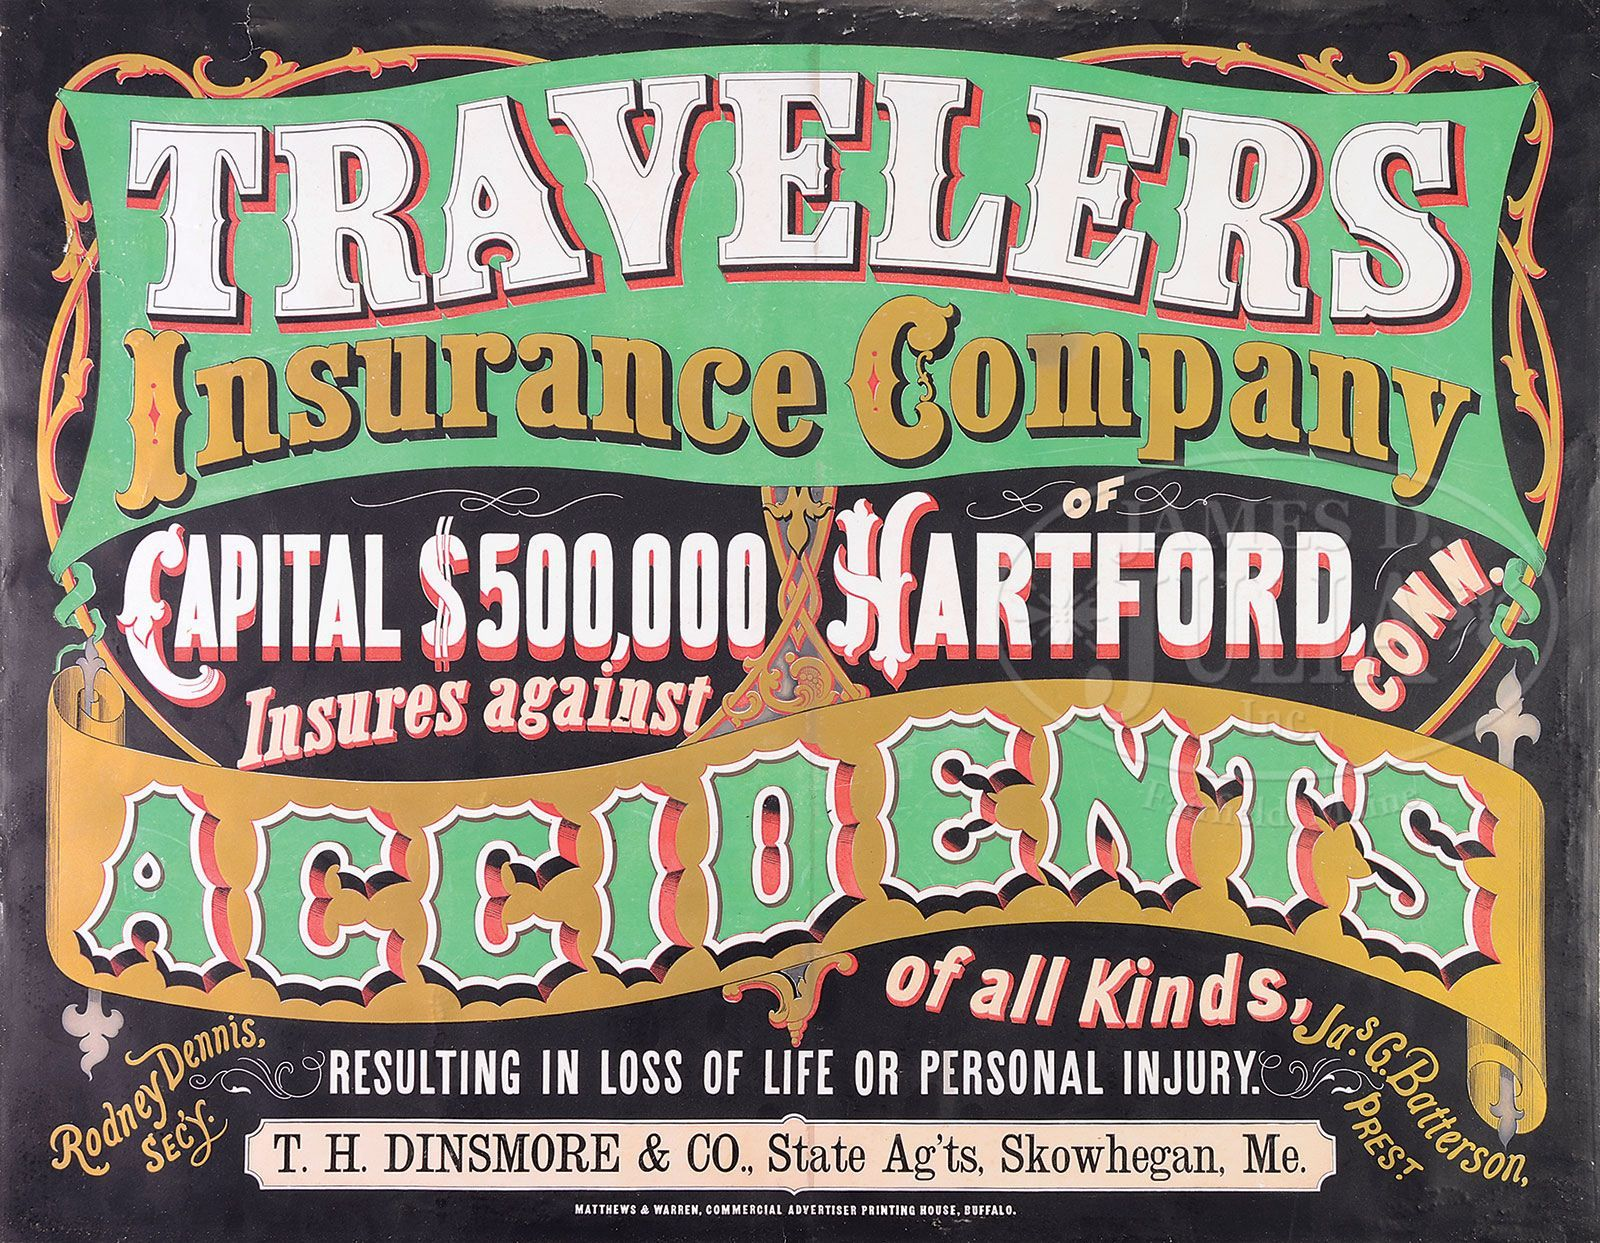 Early travelers insurance company sign personal